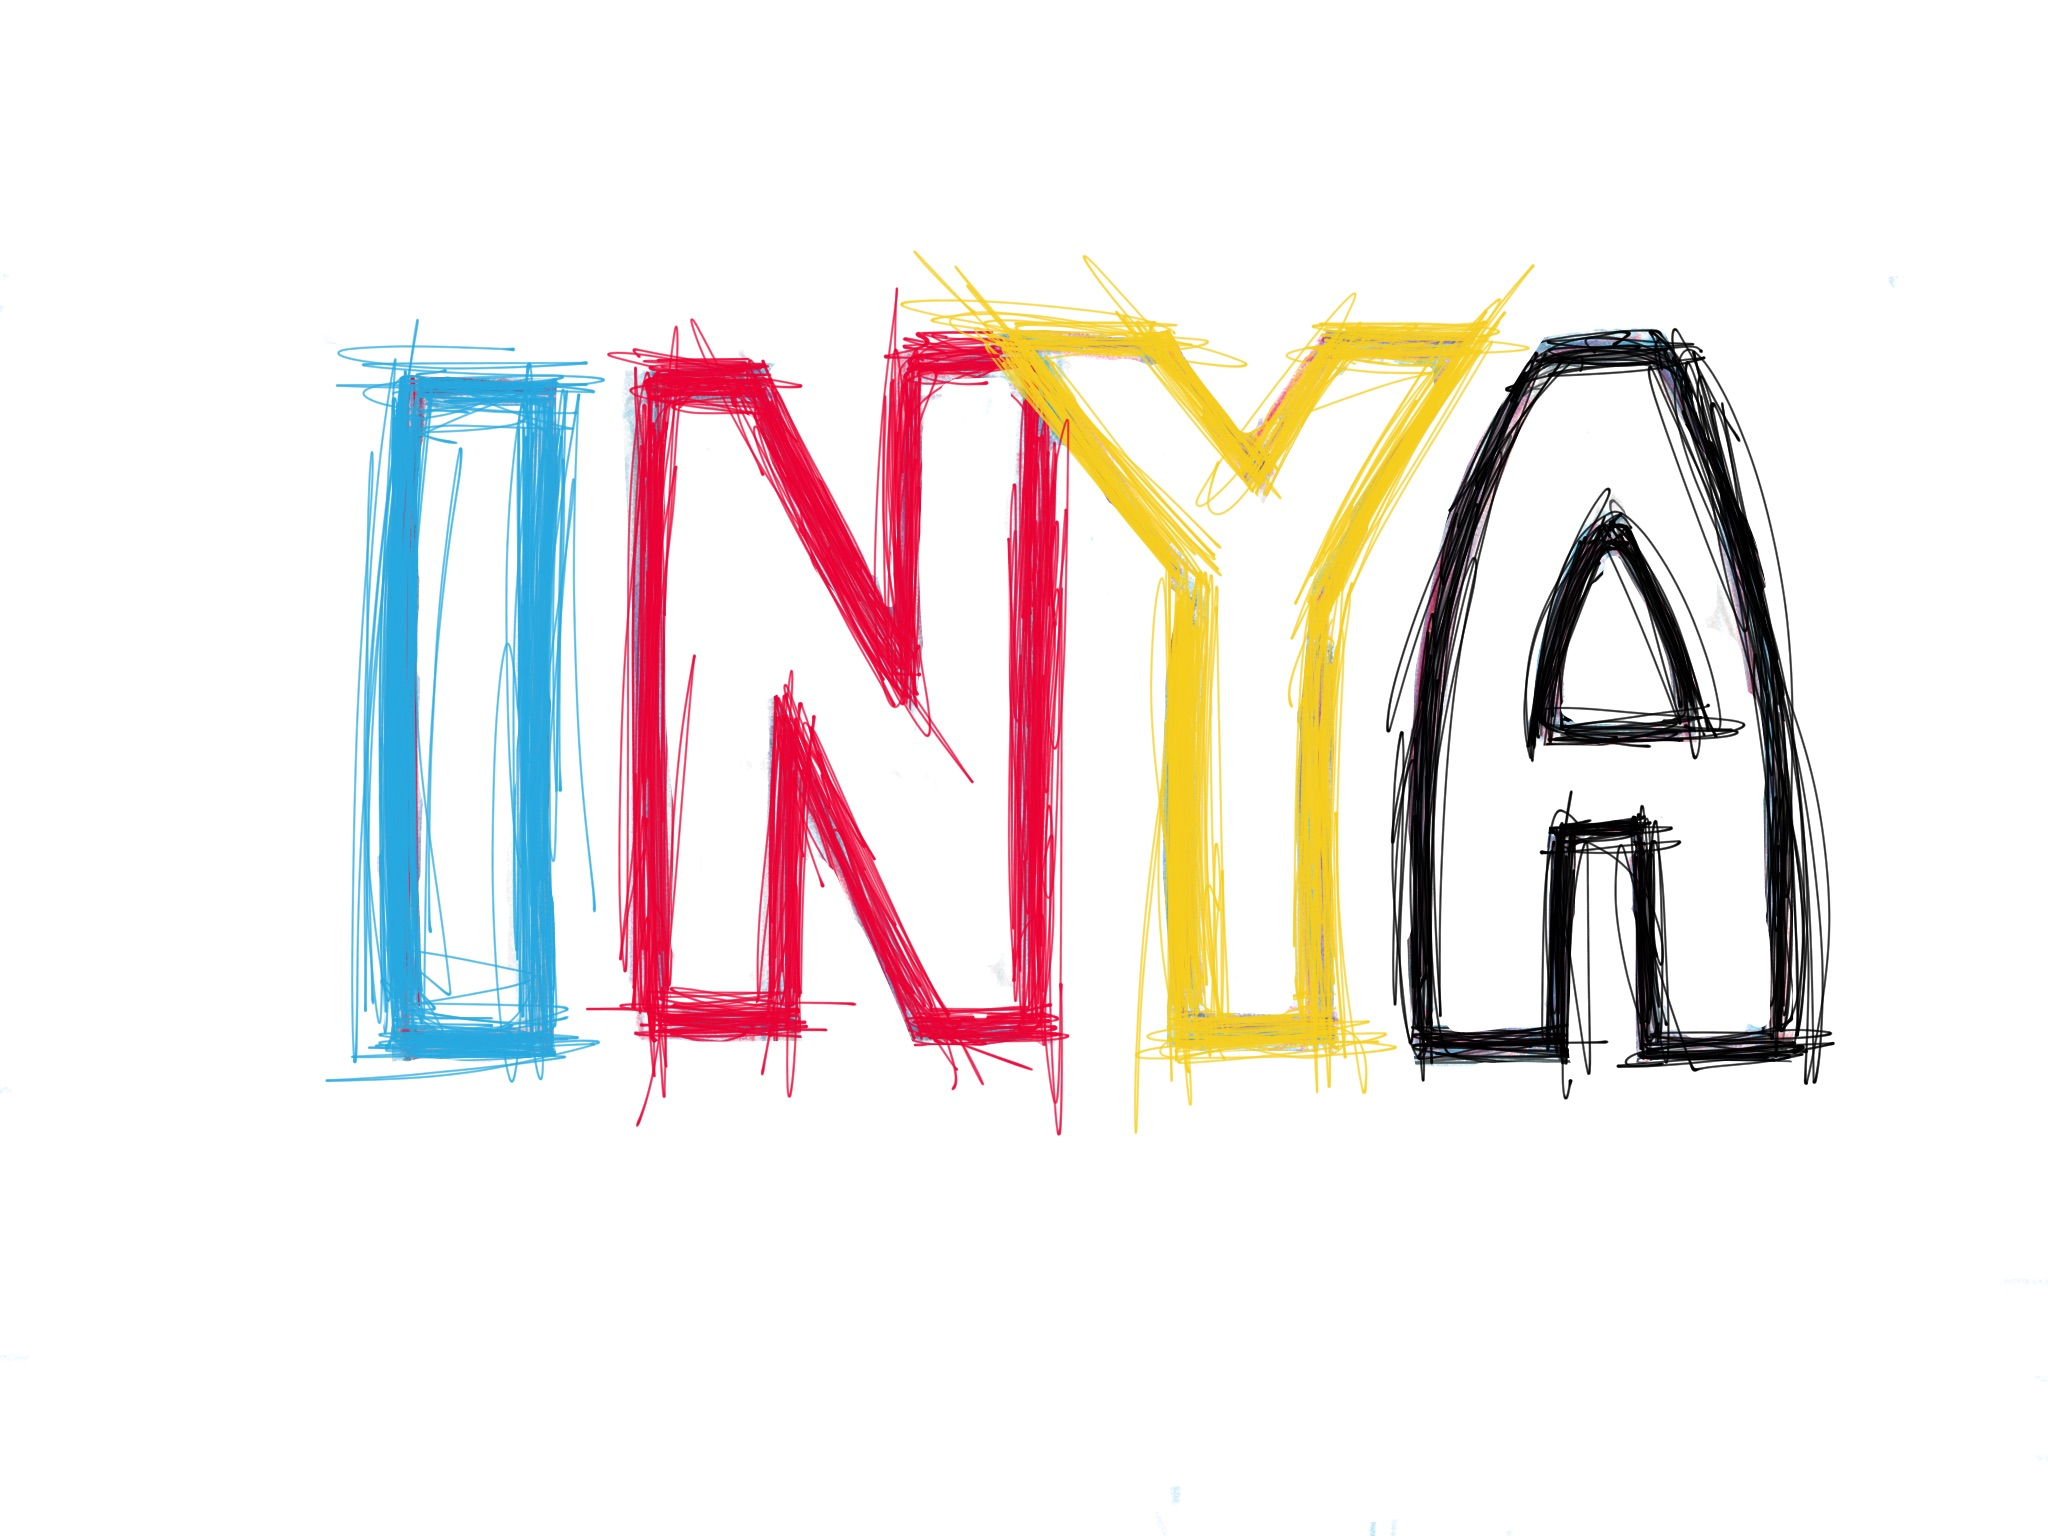 INYA Update: Happy Birthday to INYA! Two years old!